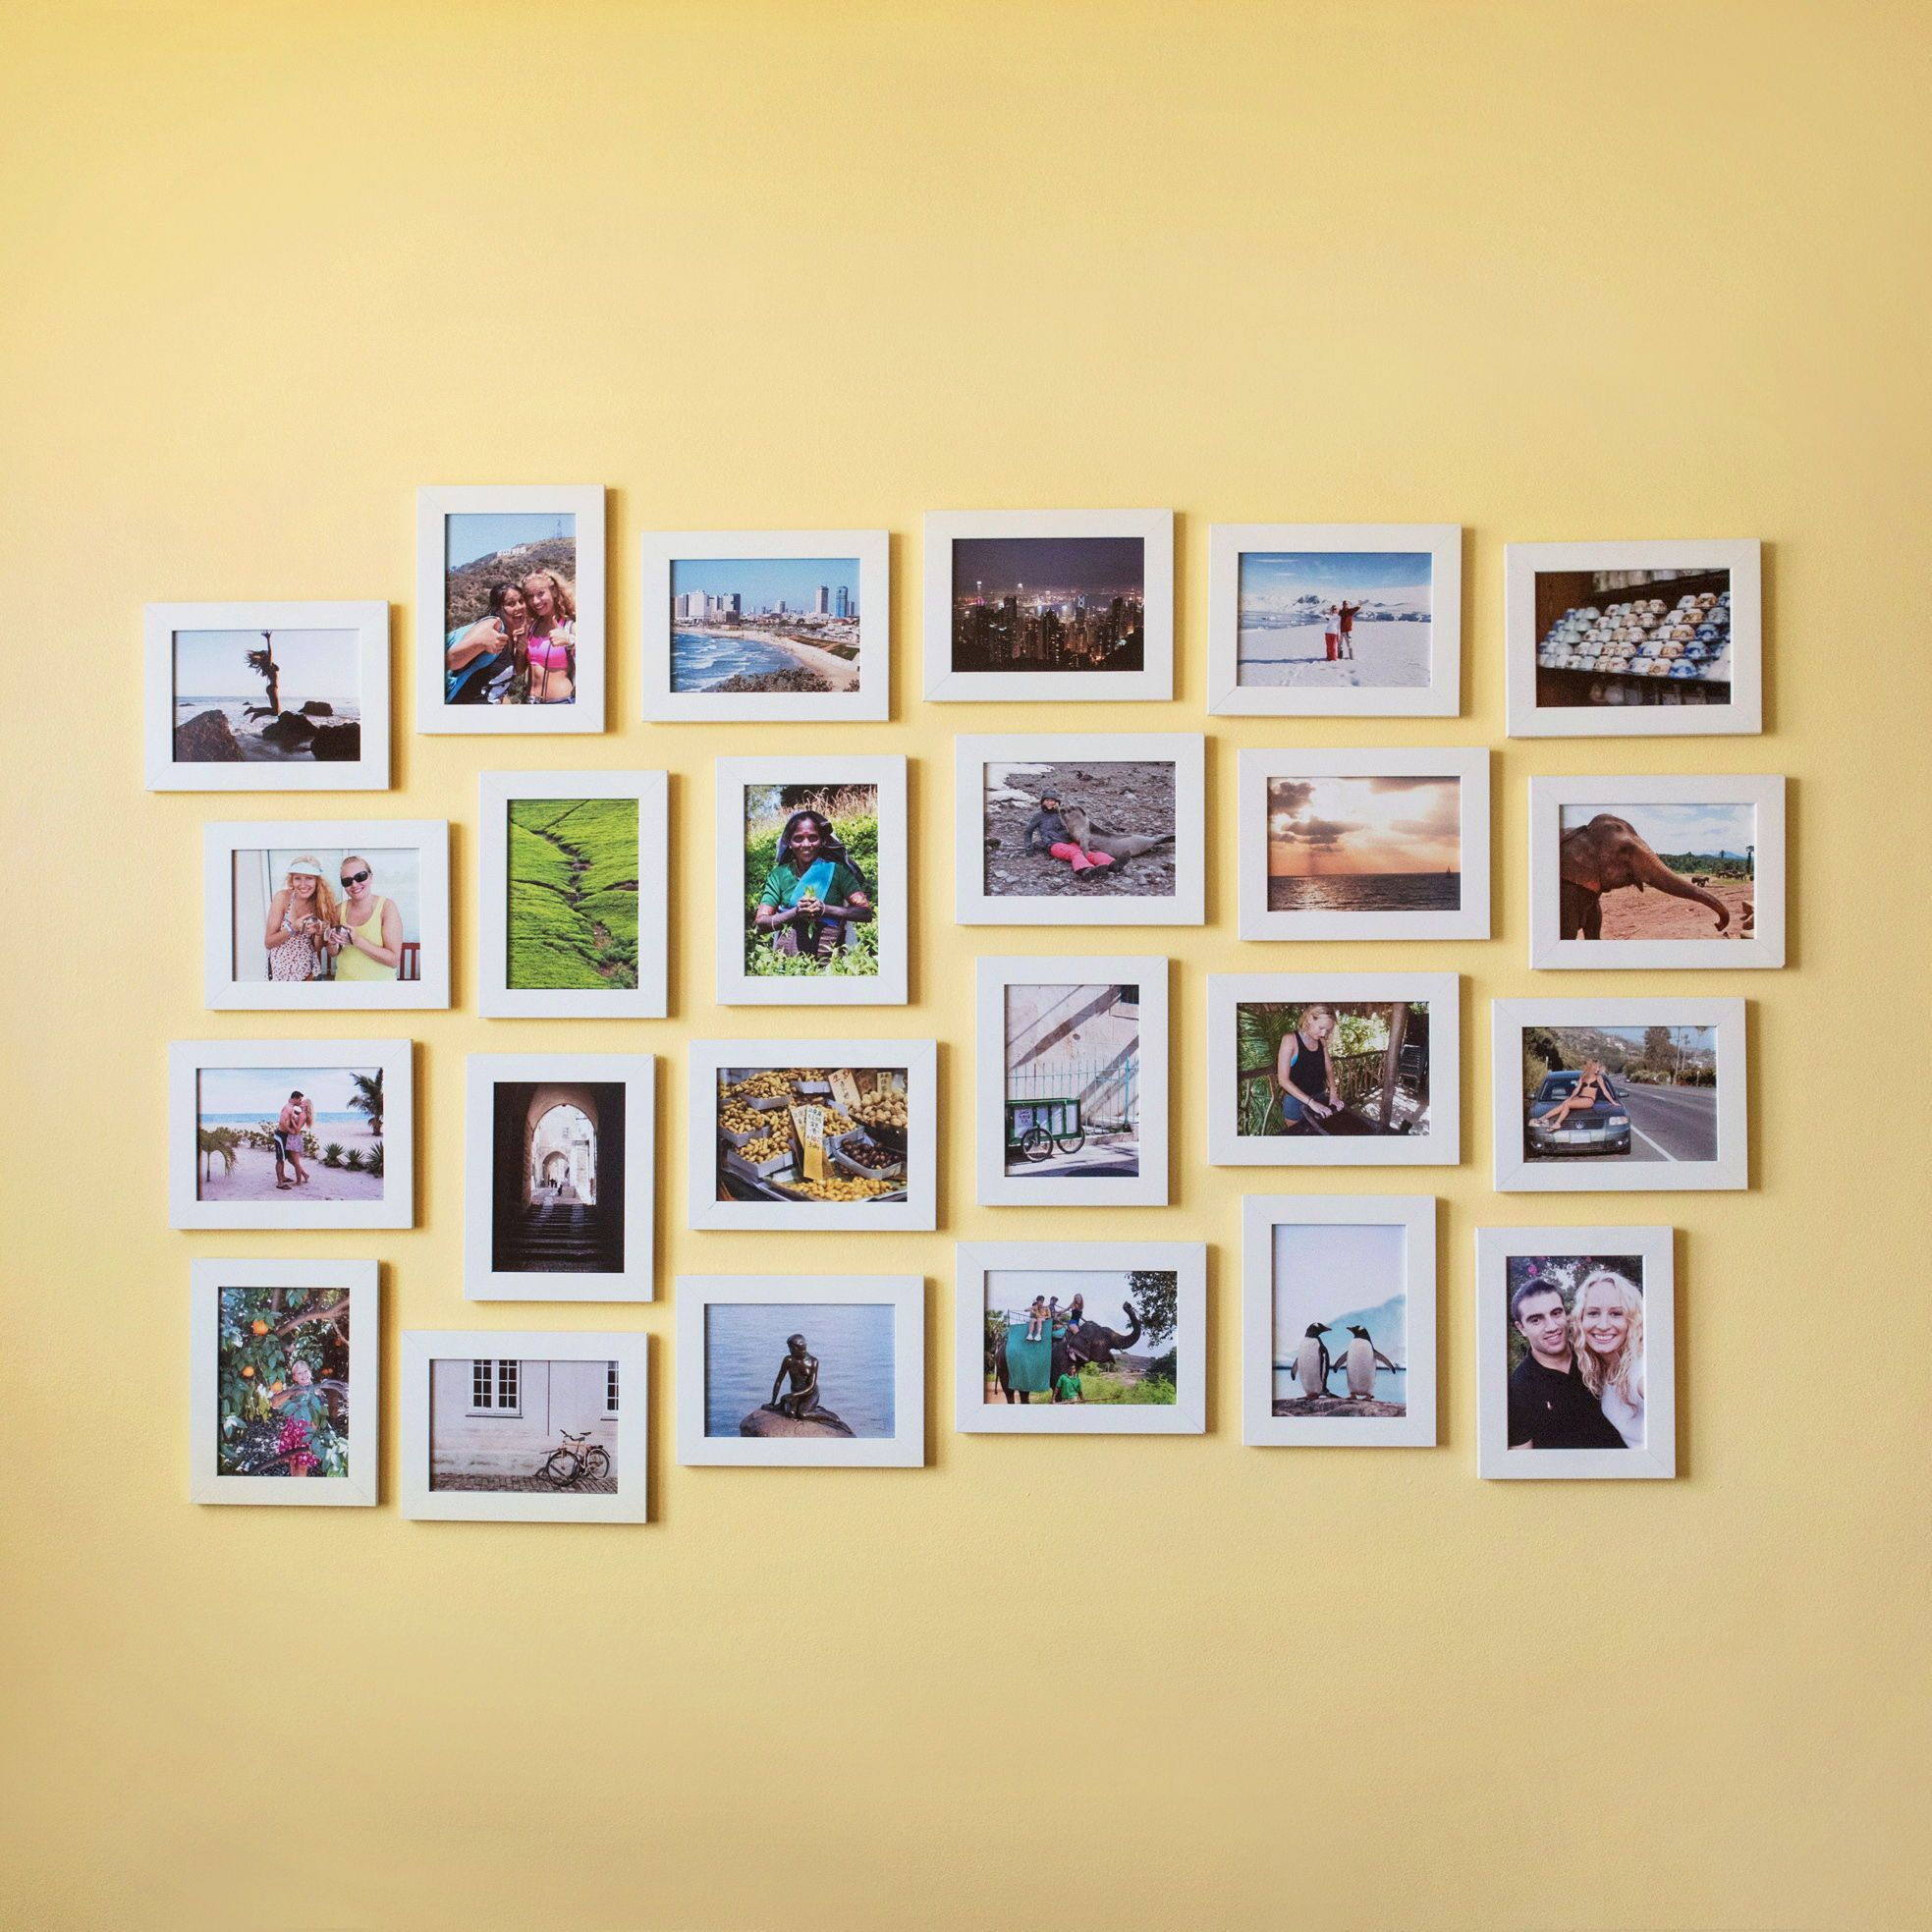 Gallery Wall • Collage of Travel Photos | Home & Living | Pinterest ...